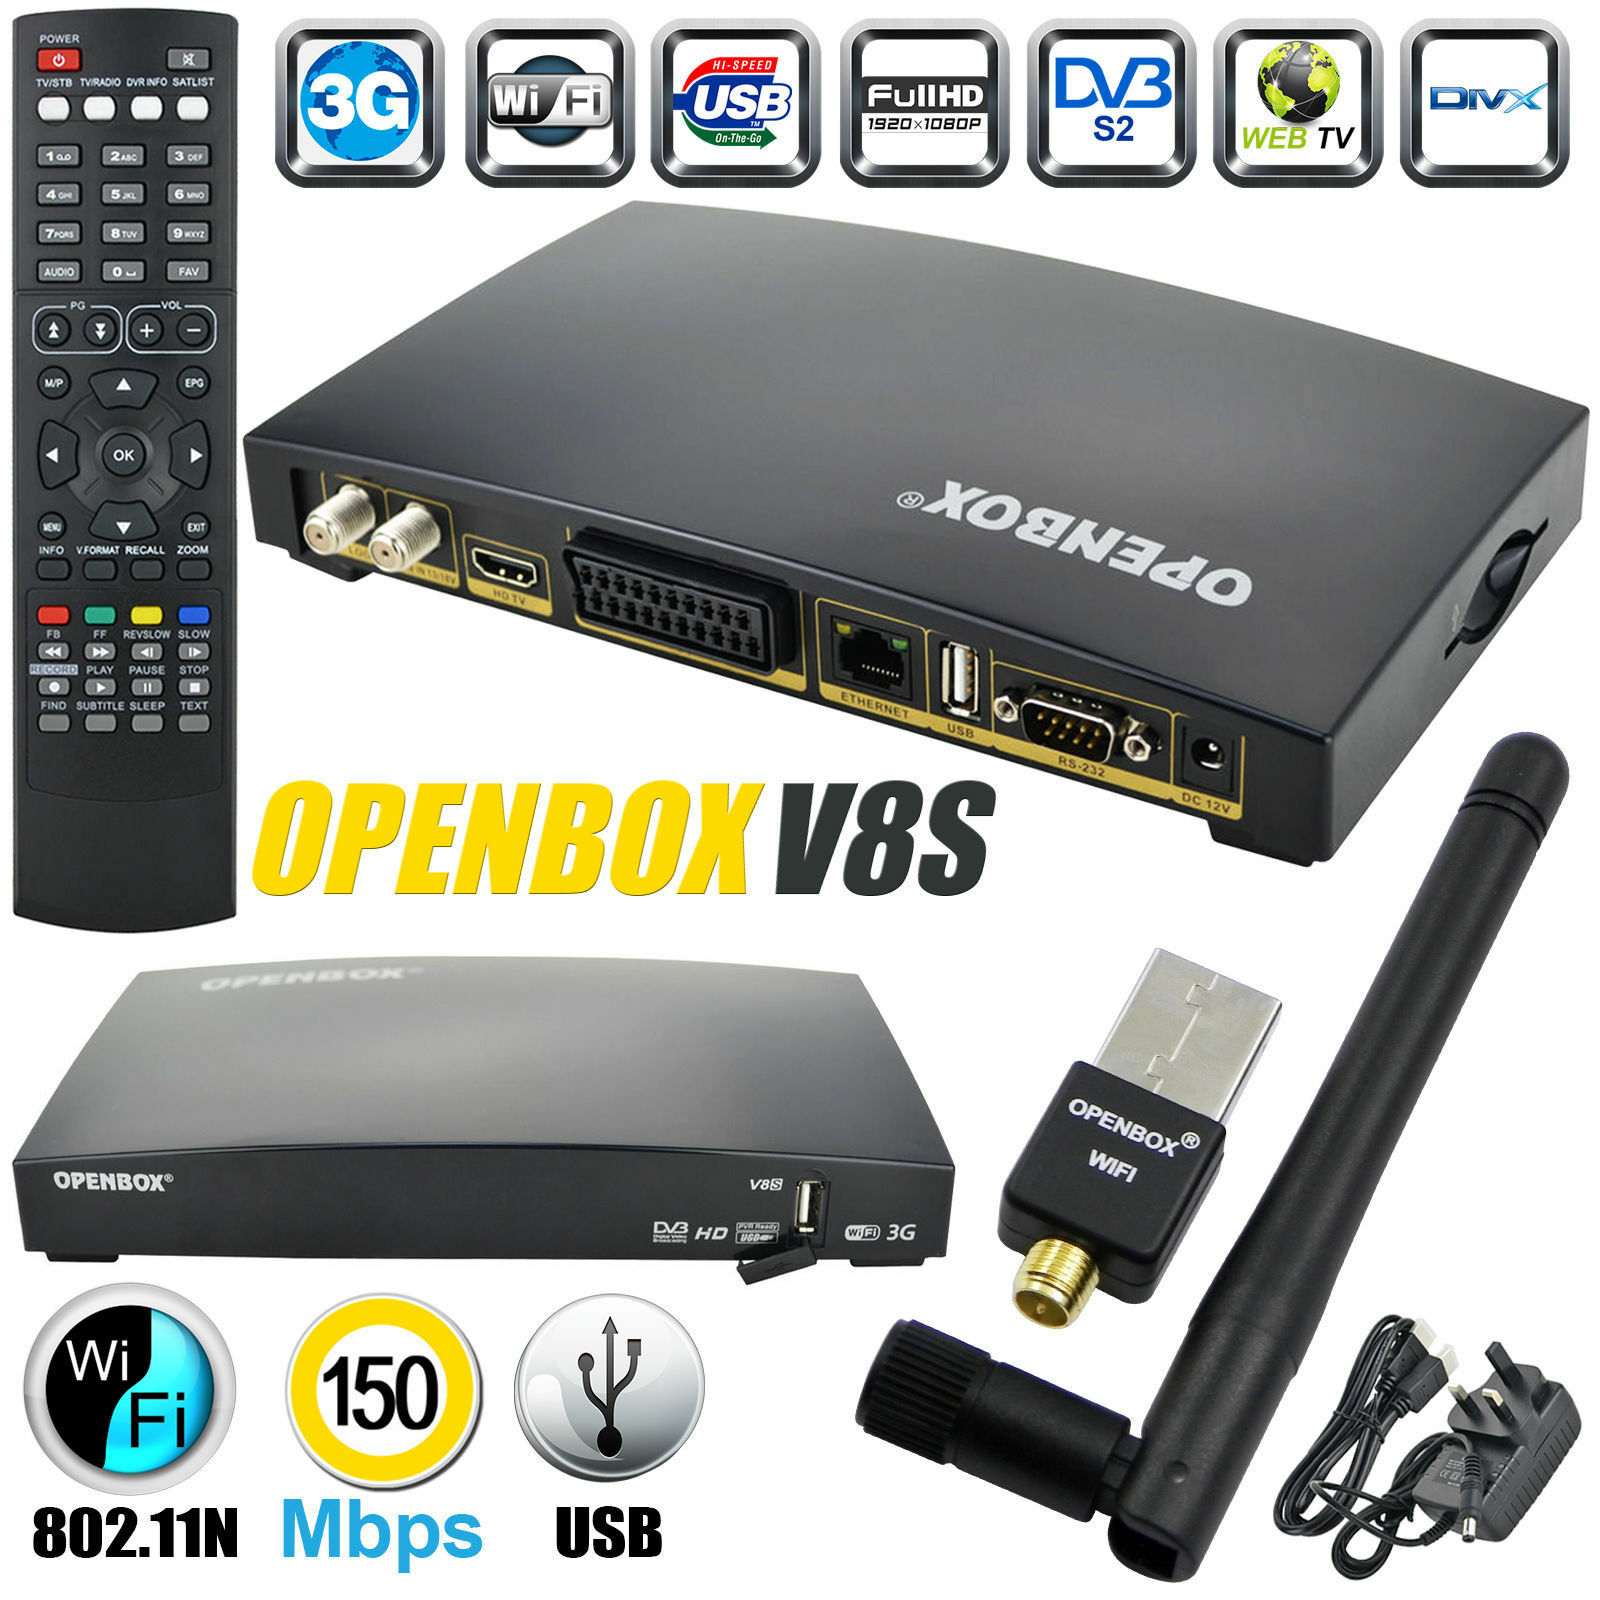 openbox v8s 2016 digital satellite receiver hd freesat box recorder wifi dongle. Black Bedroom Furniture Sets. Home Design Ideas